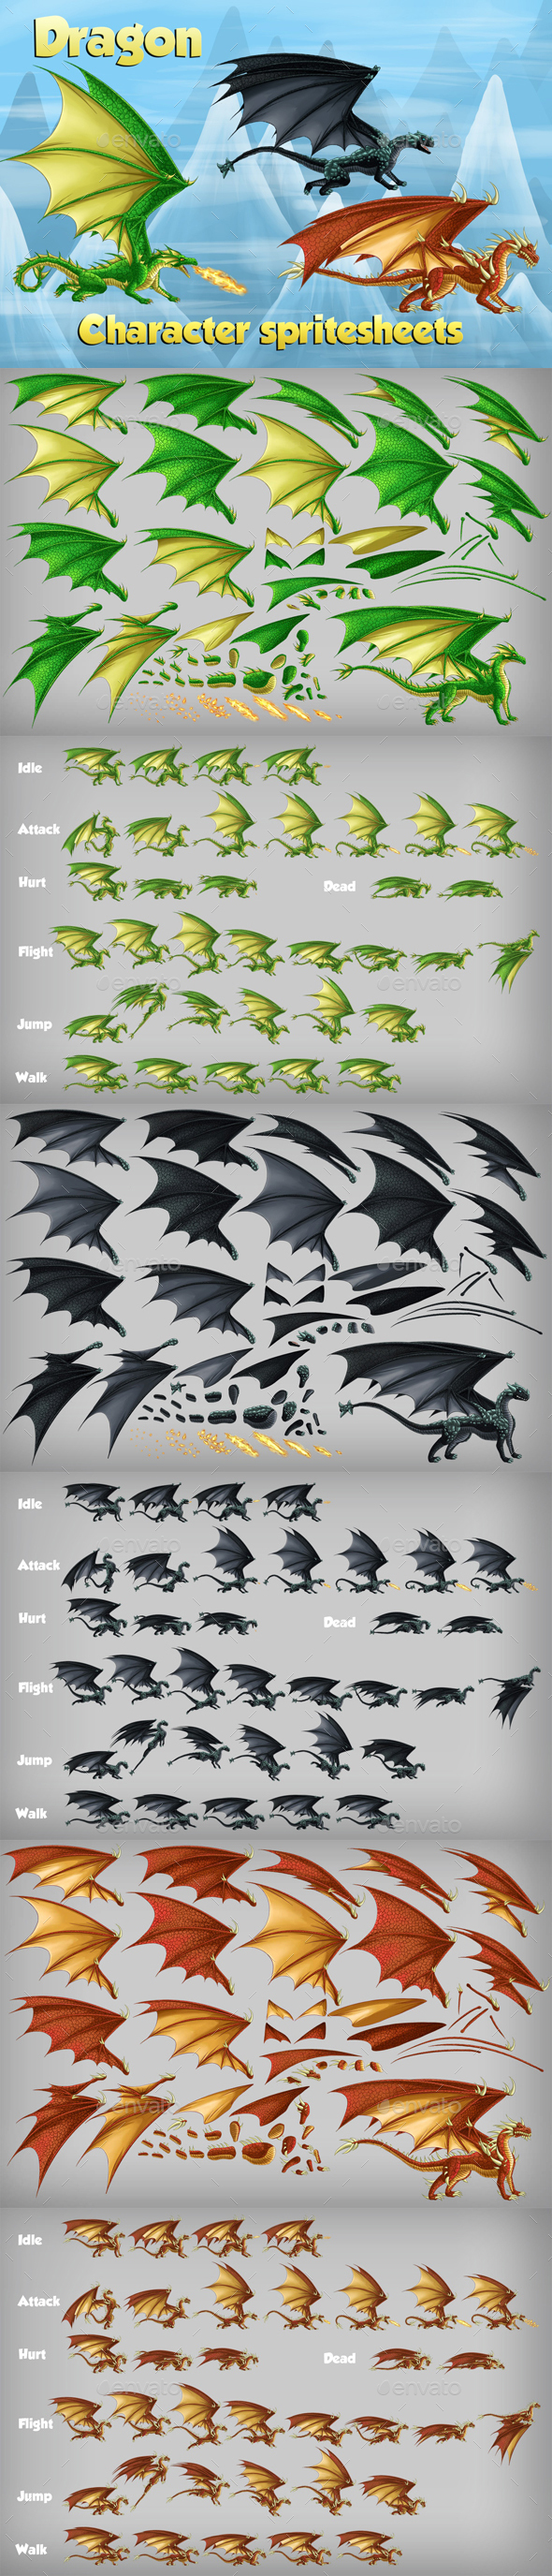 2D Game Dragon Character Spritesheet (Sprites)